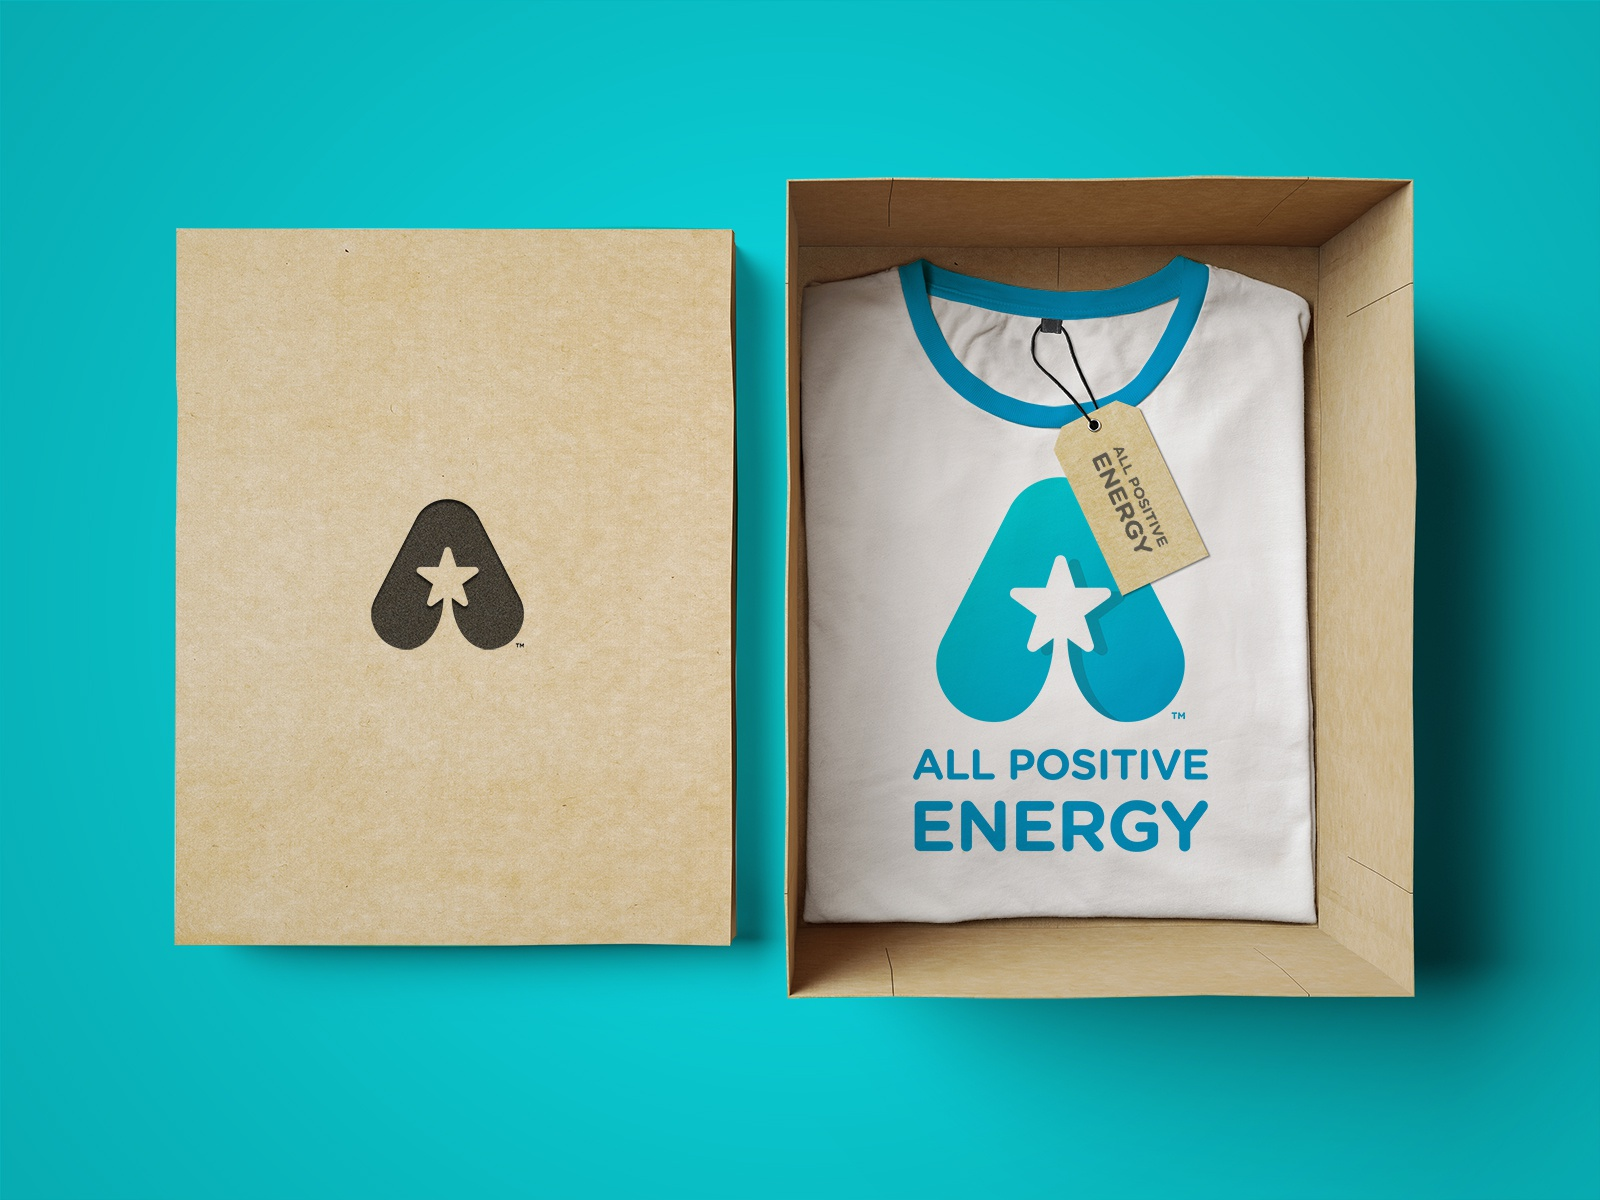 All positive energy packaging